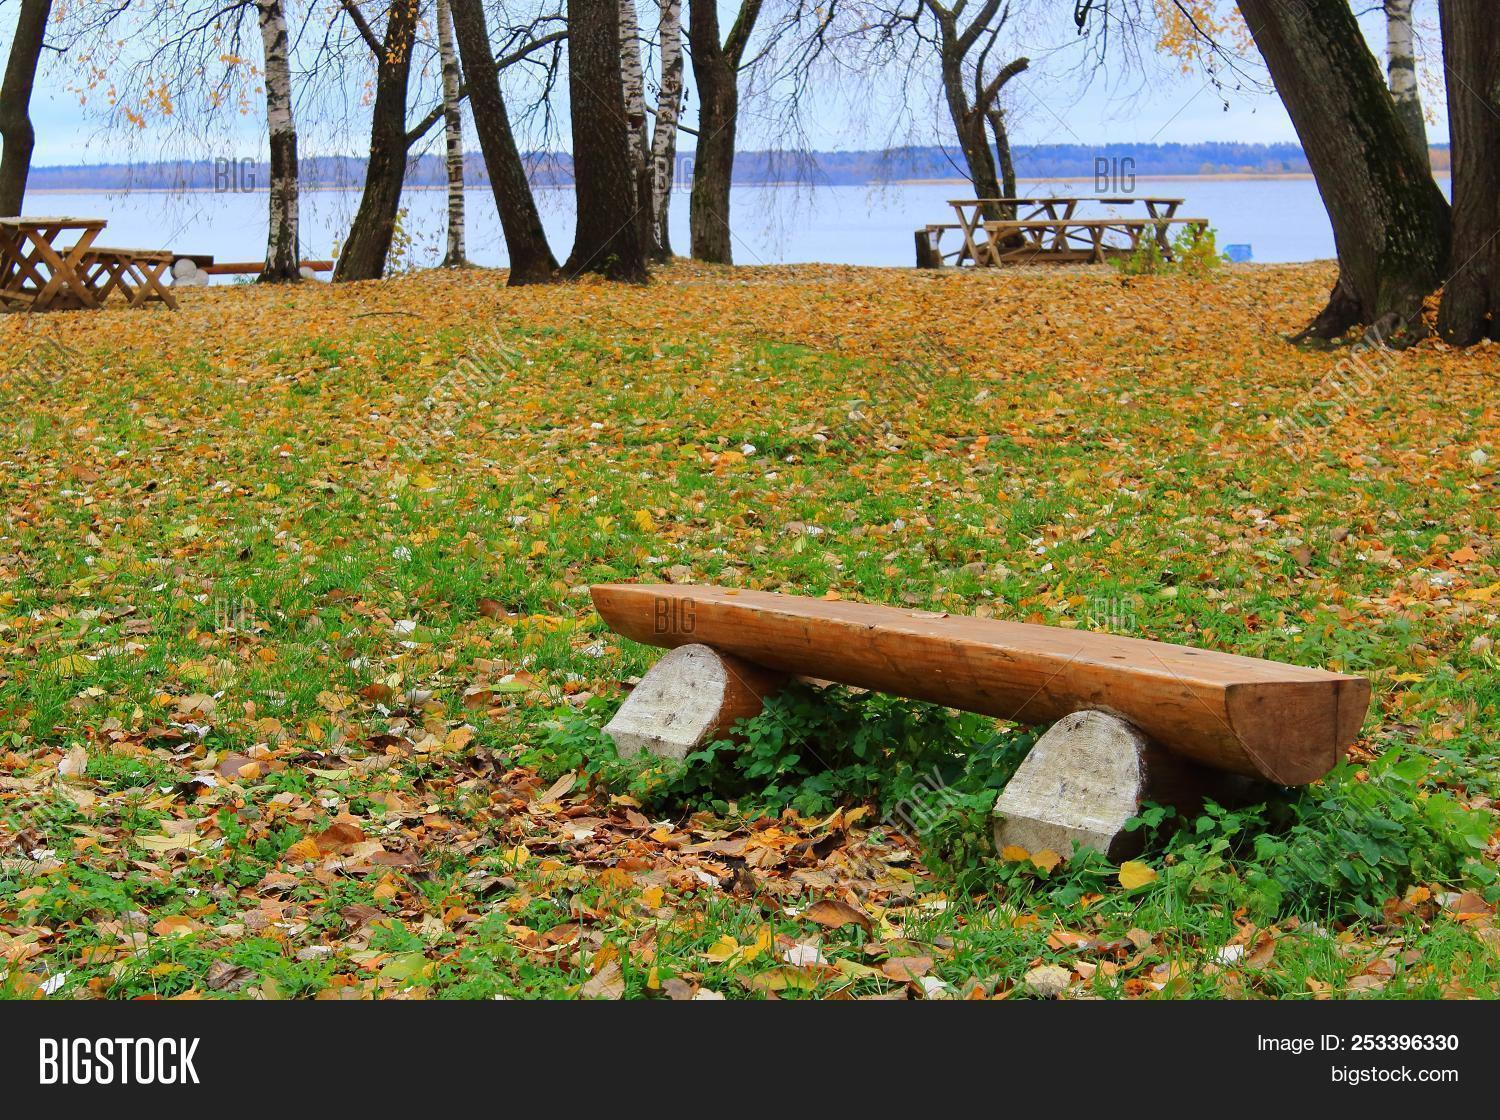 Wooden Bench Autumn Image Photo Free Trial Bigstock